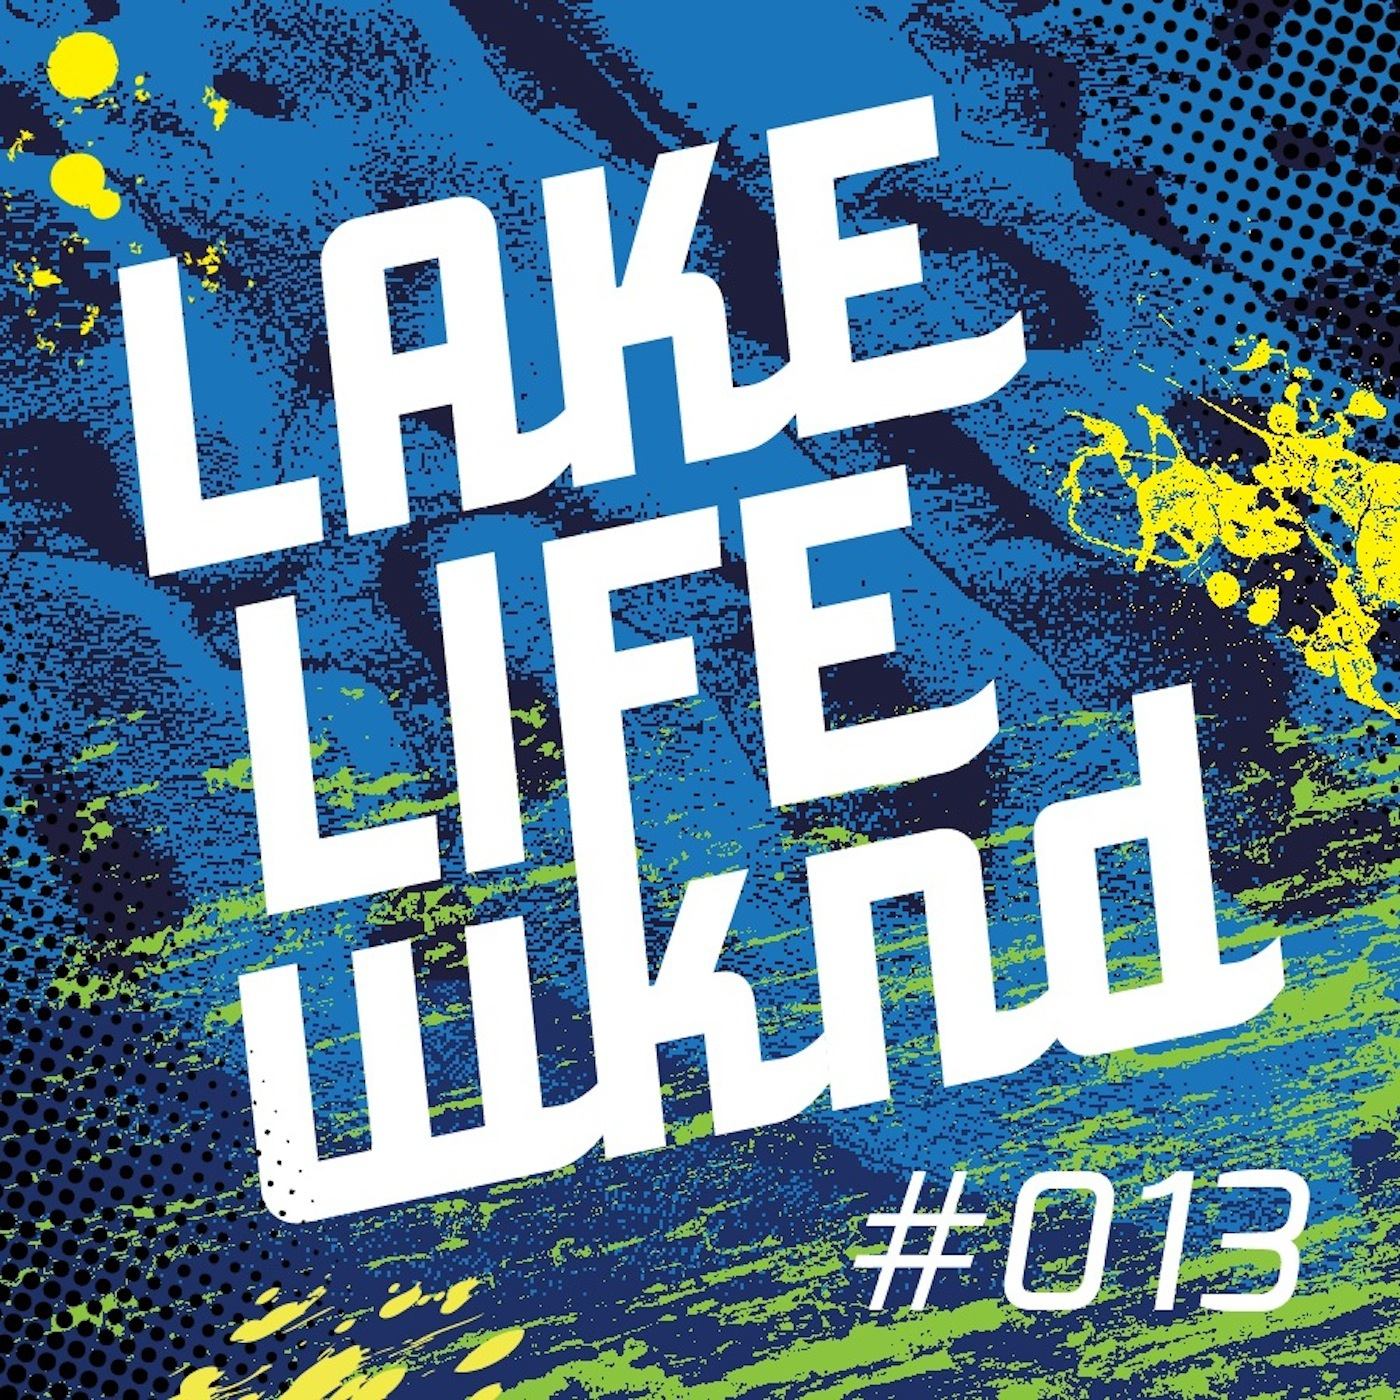 WKND#013 EXPO LIVE ON STAGE ABOUT KITE SURFING AND HYDROFLIGHT